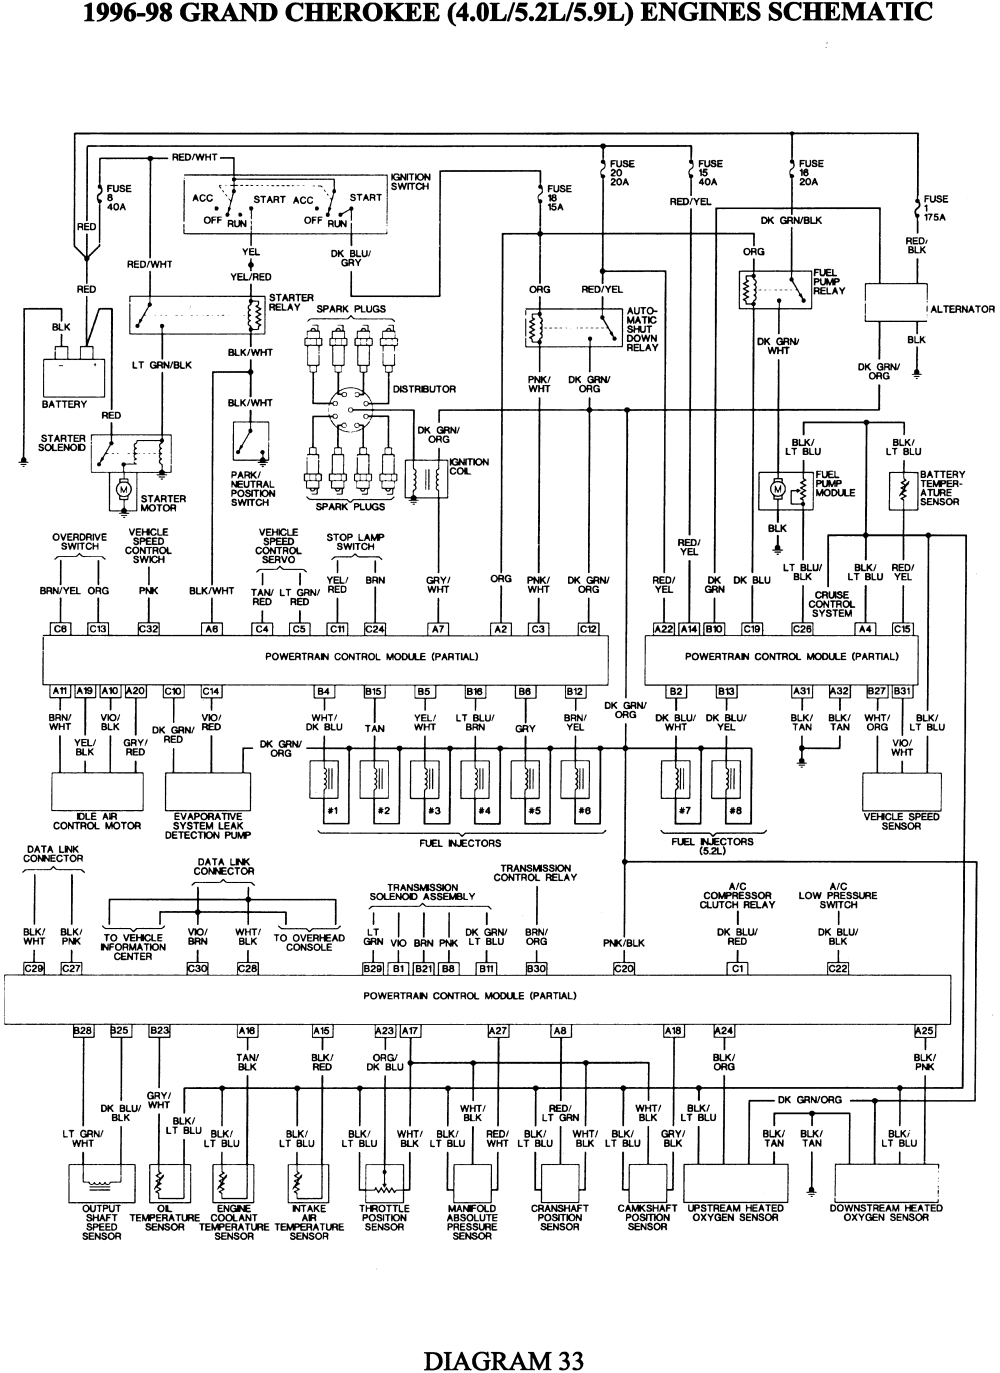 Jeep Wrangler Stereo Wiring Diagram - Roc-Grp - 1995 Jeep Cherokee Wiring Diagram